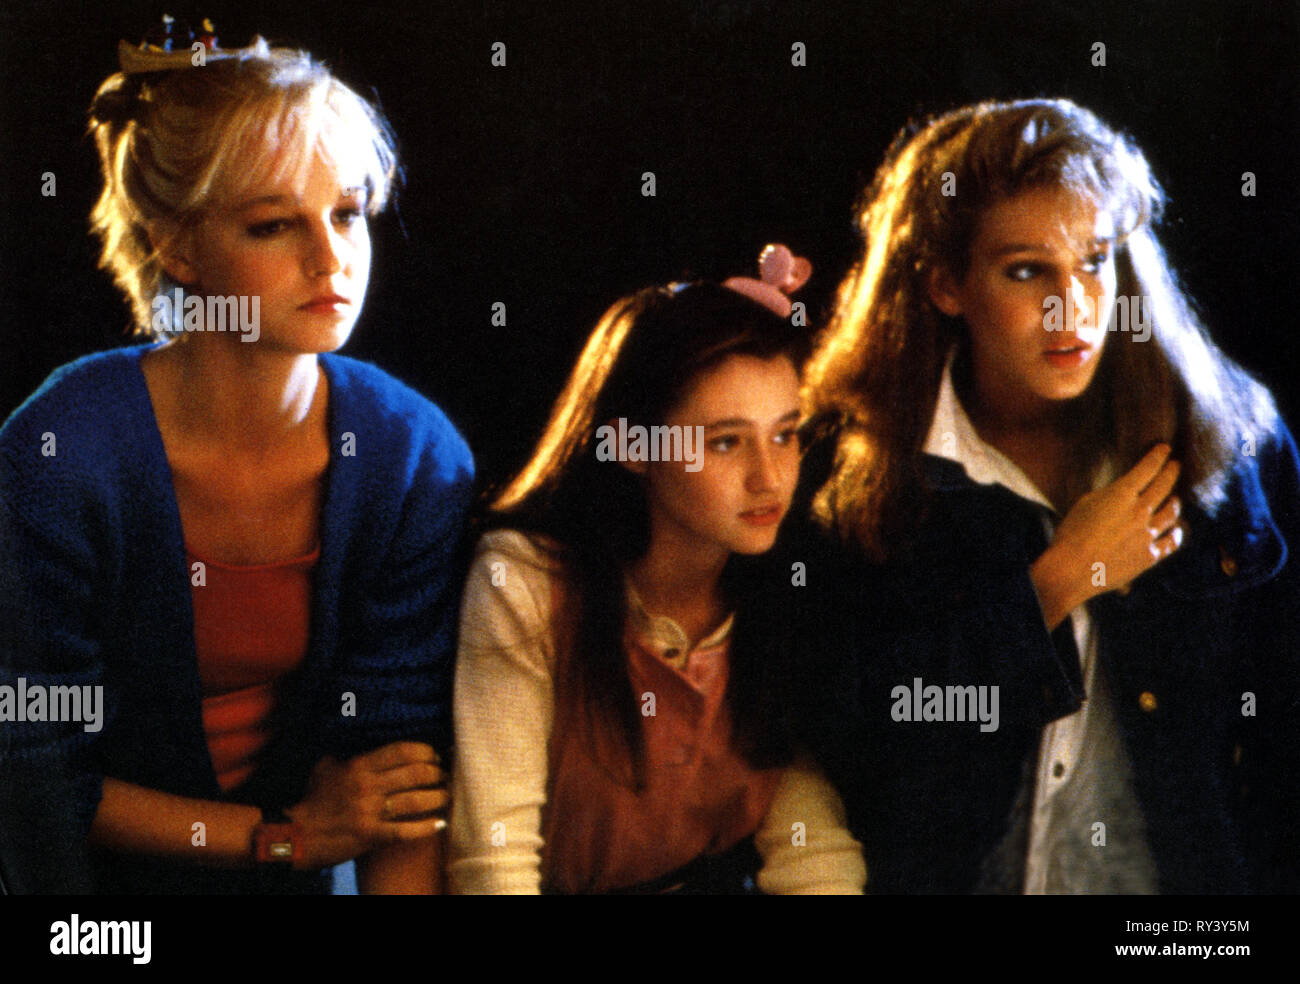 Girls Just Want To hunt,doherty,parker, girls just want to have fun, 1985 stock